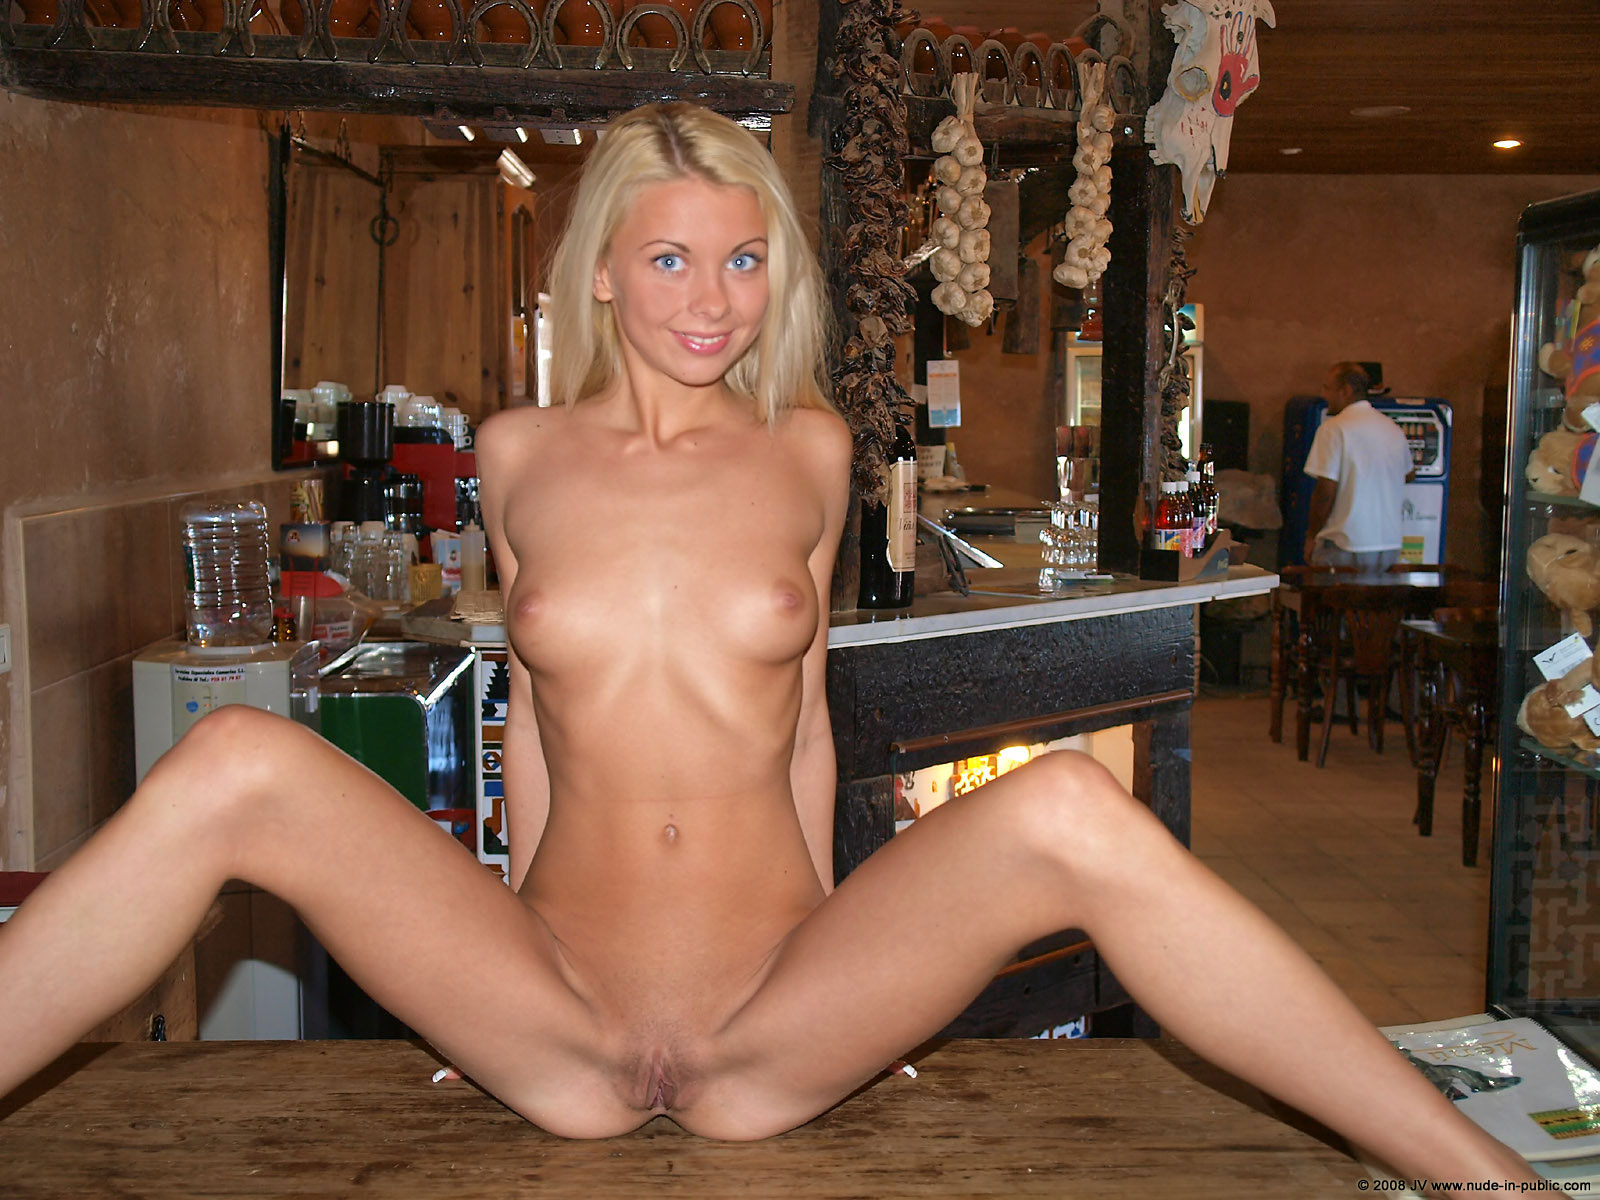 Teen nude in bar thanks